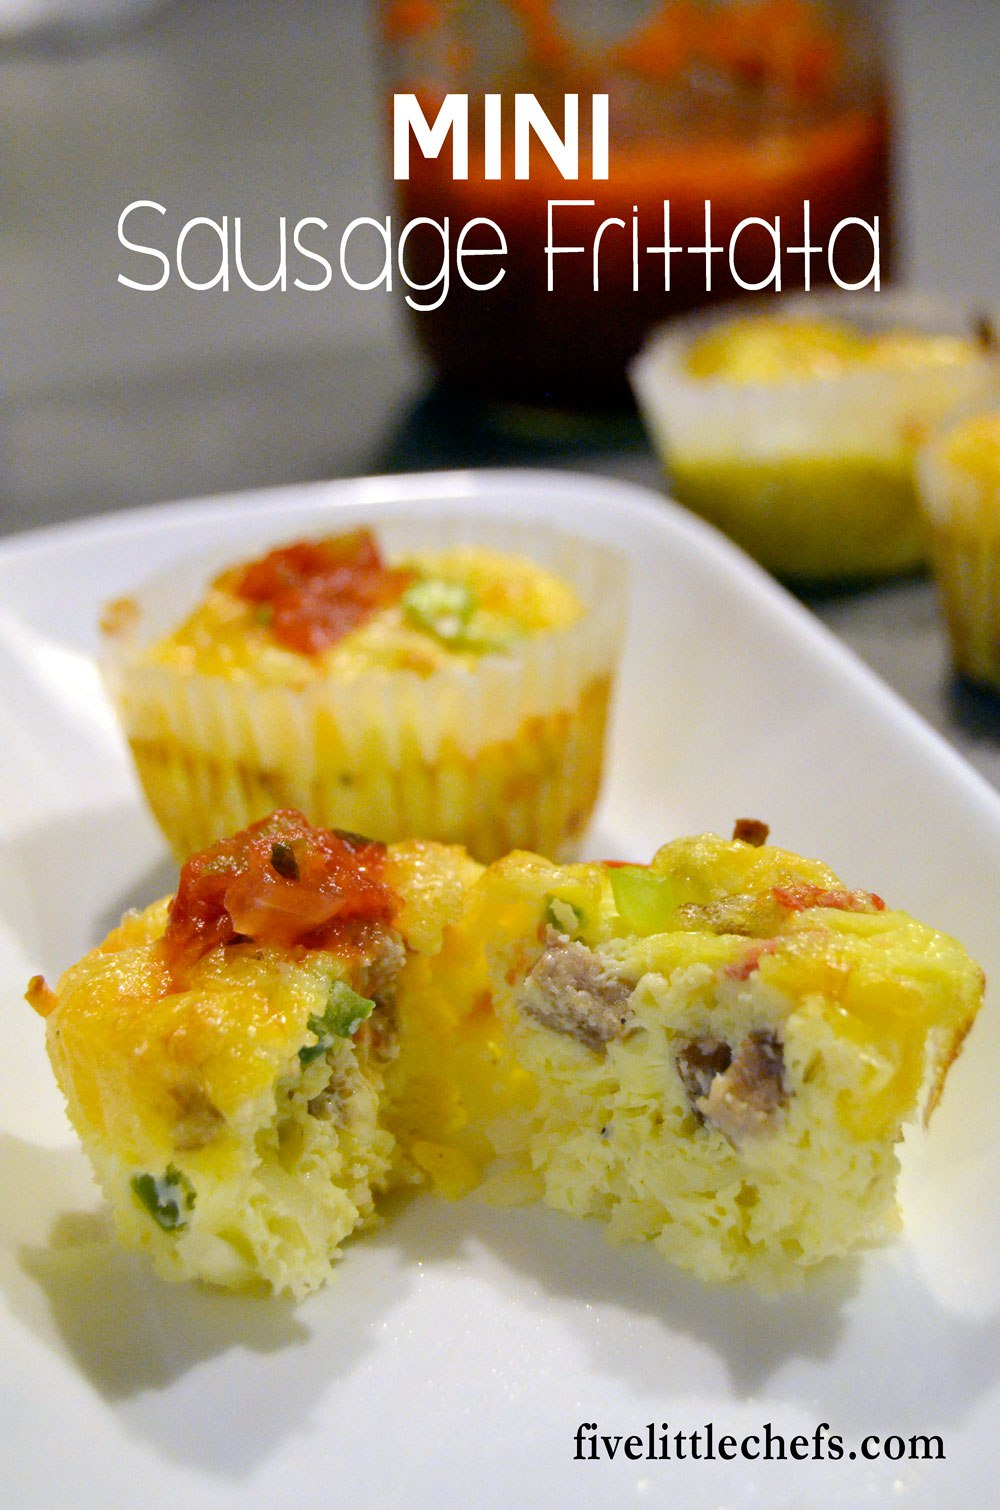 Mini Sausage Frittata | Five Little Chefs